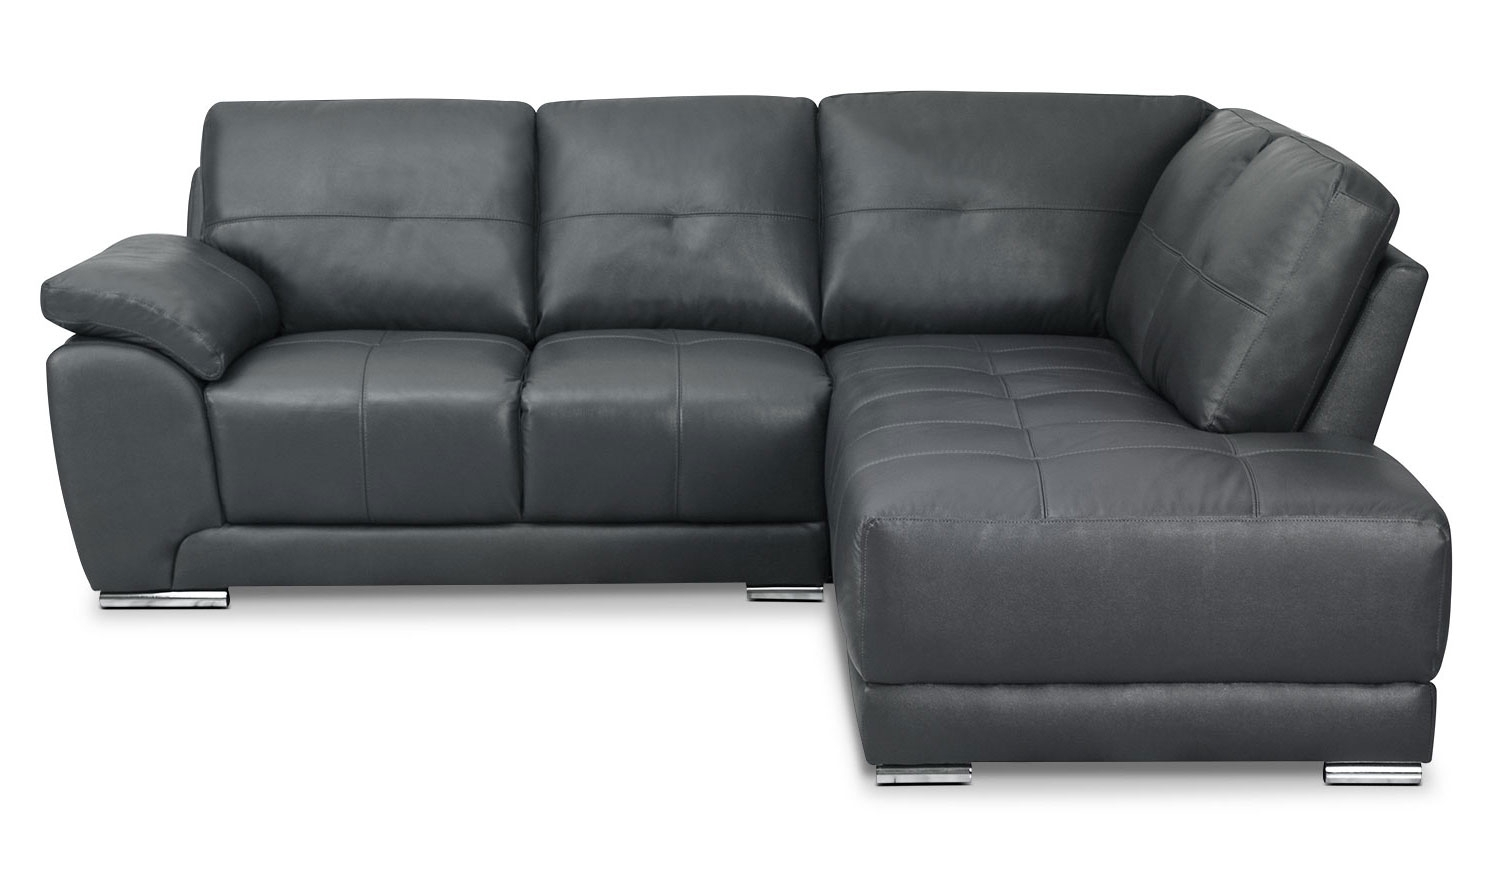 Epic The Brick Sectional Sofa Bed 99 On Sectional Sofas Dallas With regarding Sectional Sofas At The Brick (Image 9 of 15)